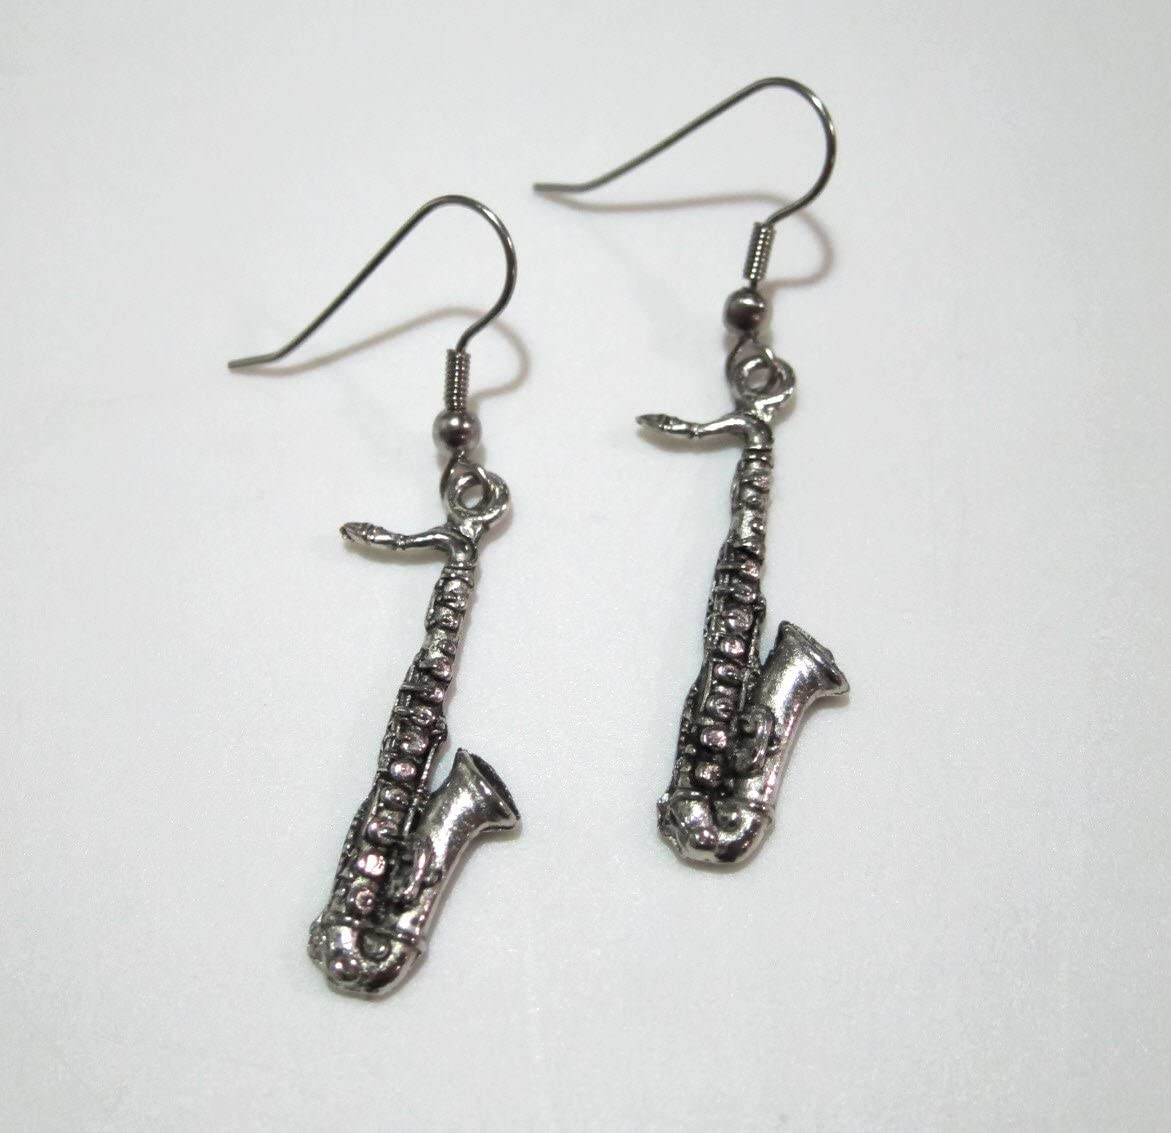 Exclusive Pewter Earrings Max 63% OFF - lowest price Saxophone